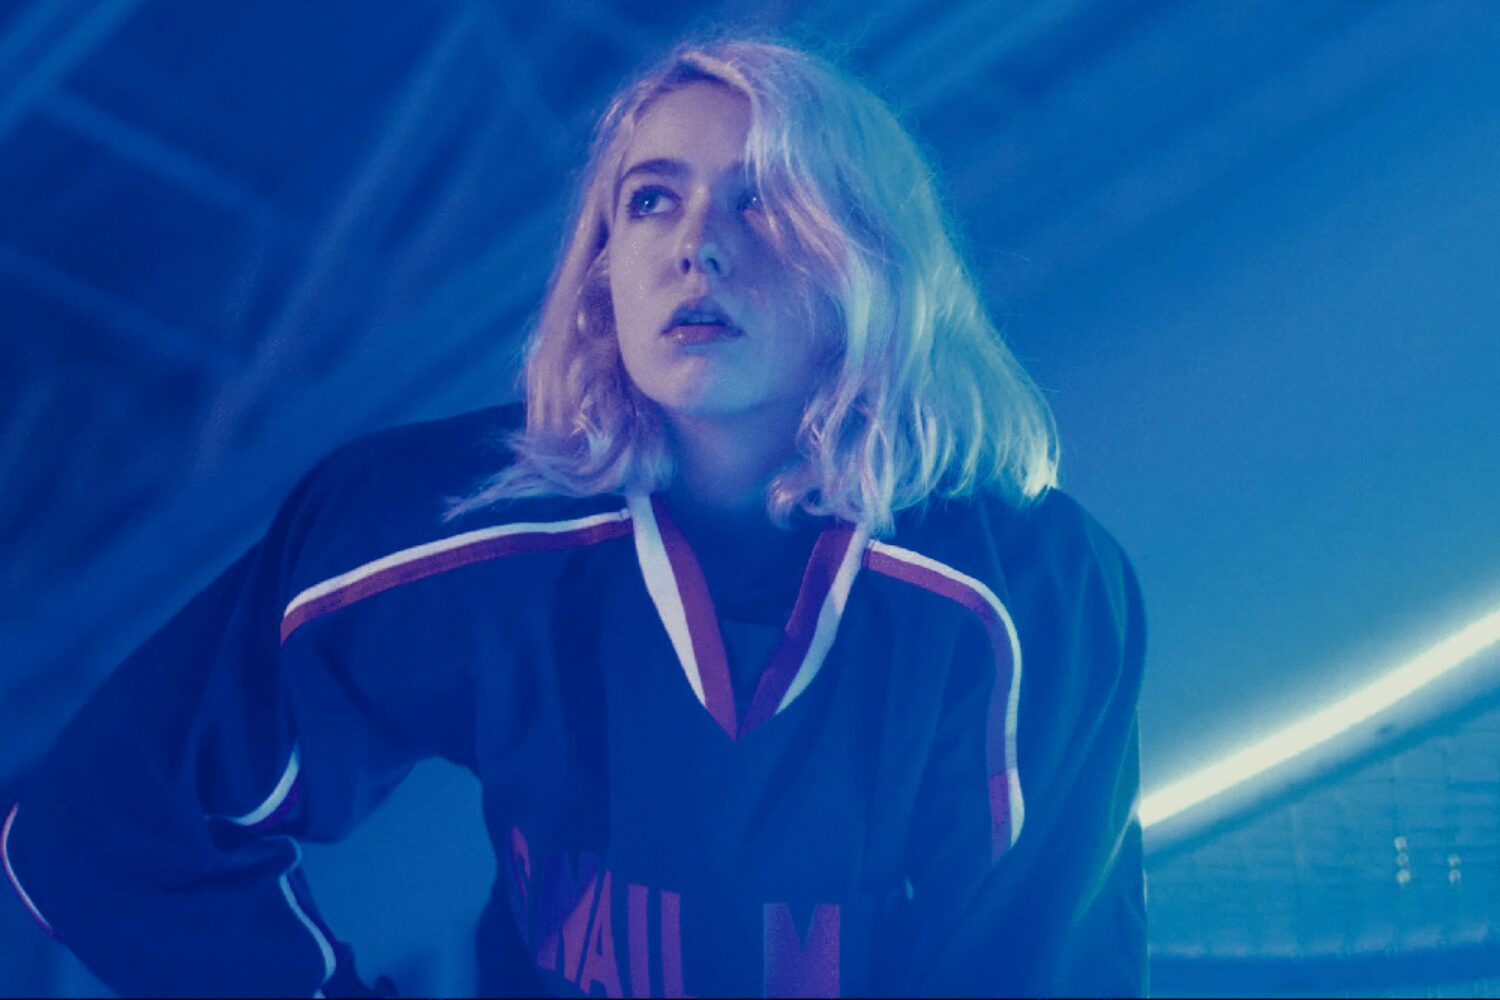 Snail Mail gets her skates on in 'Heat Wave' video